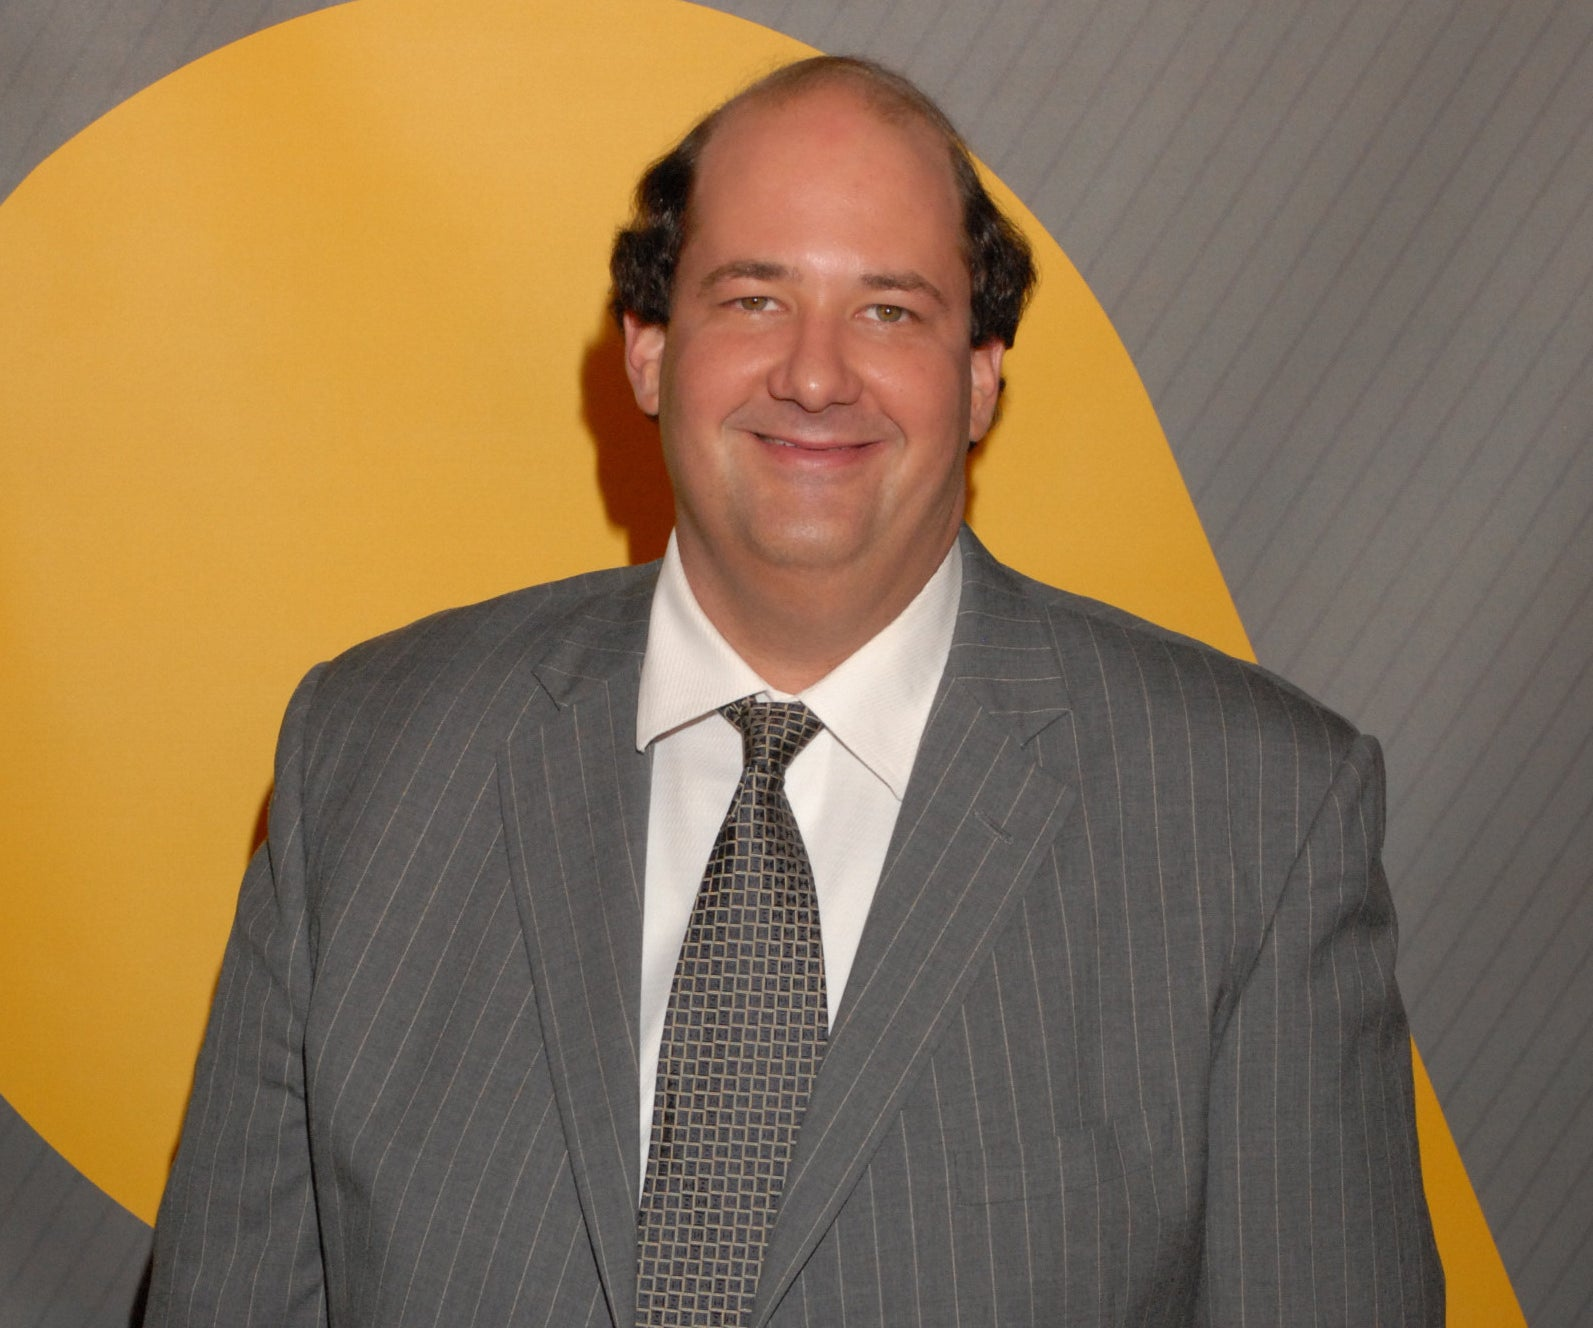 Brian appears at an event in a grey striped suit